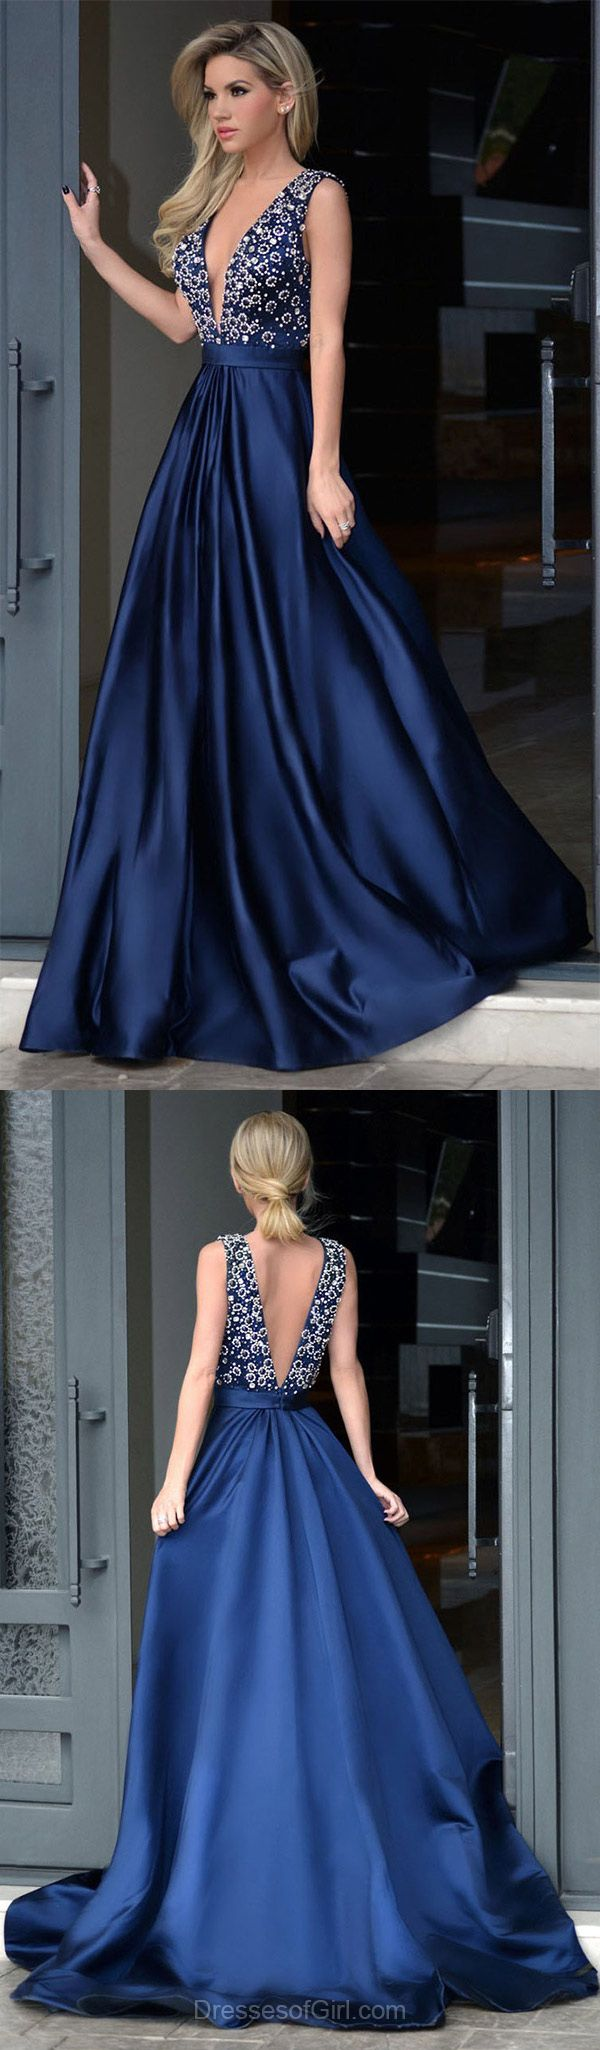 A-line V-neck Satin Sweep Train Beading Royal Blue Backless Amazing Prom Dresses